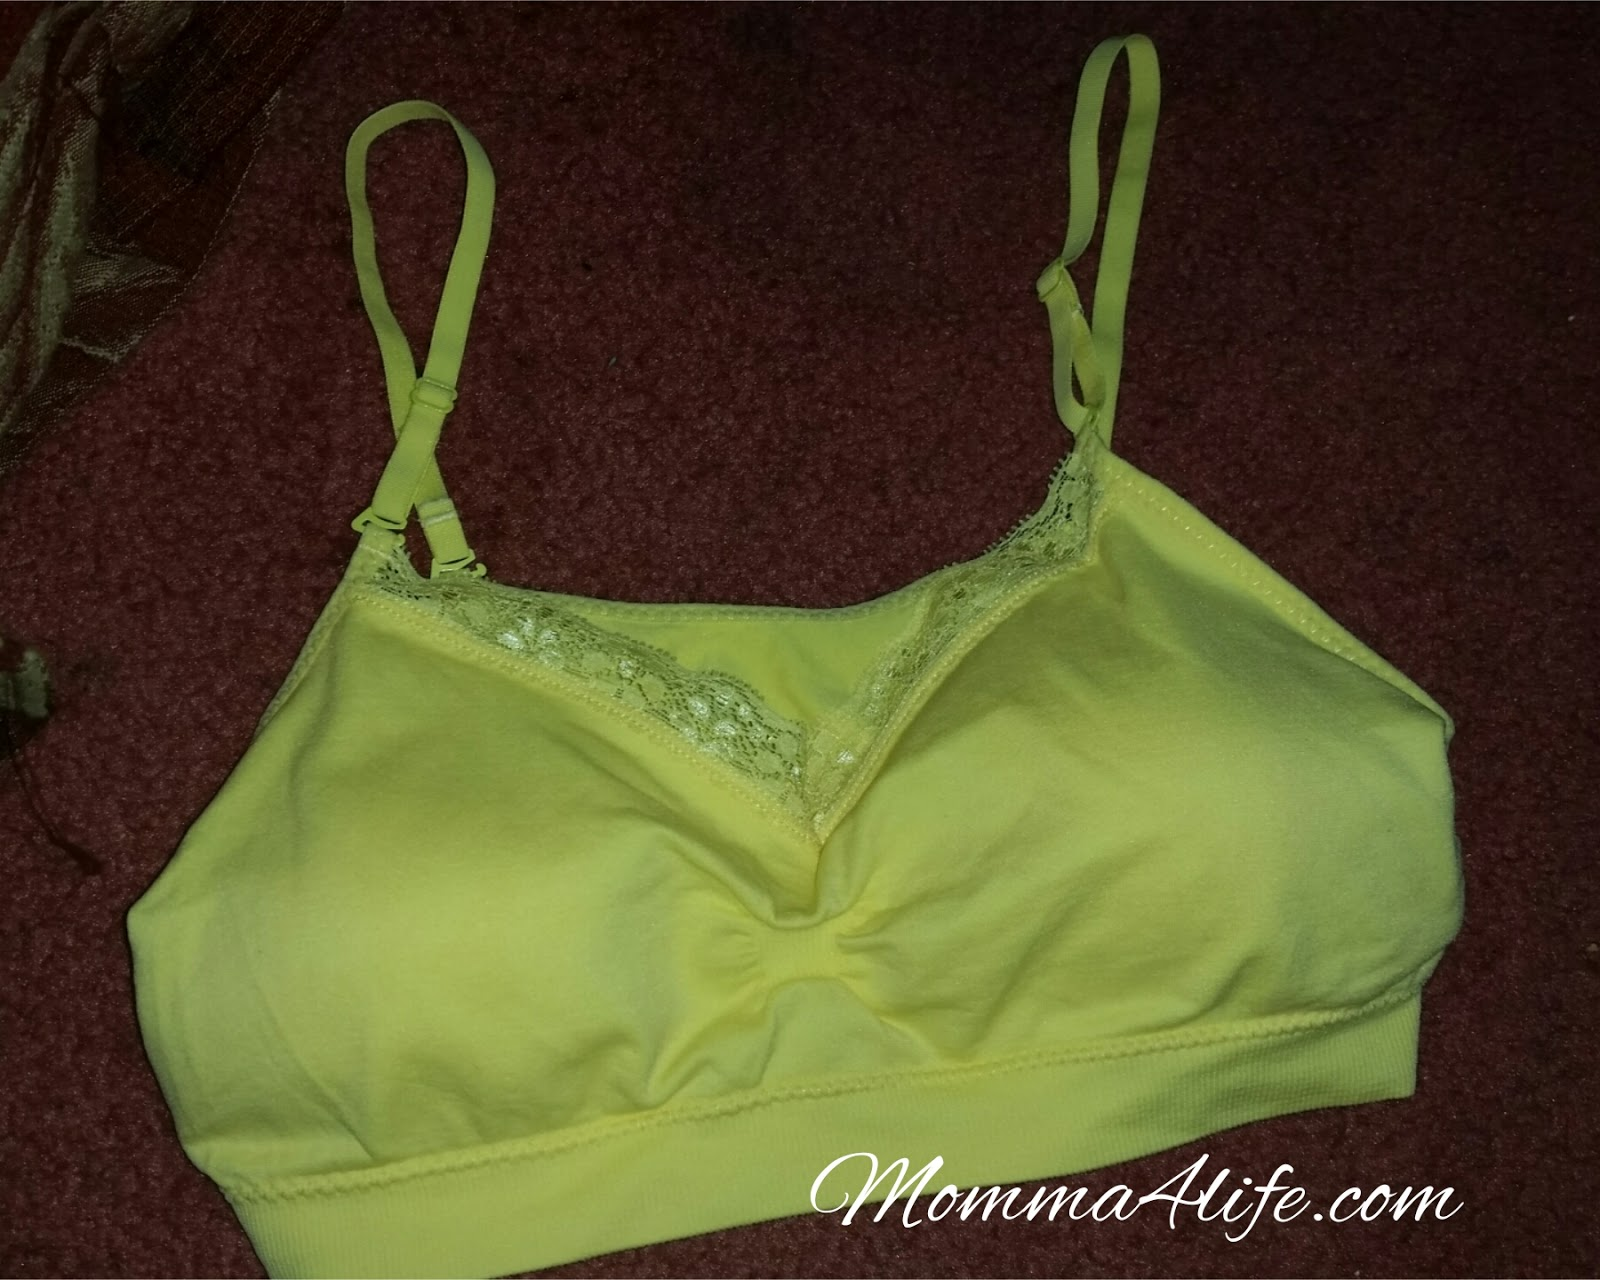 5861fb00925fa These bras are very comfortable and great to wear under your workout  clothes or any clothes for that matter they re just so comfortable. And so  cute.